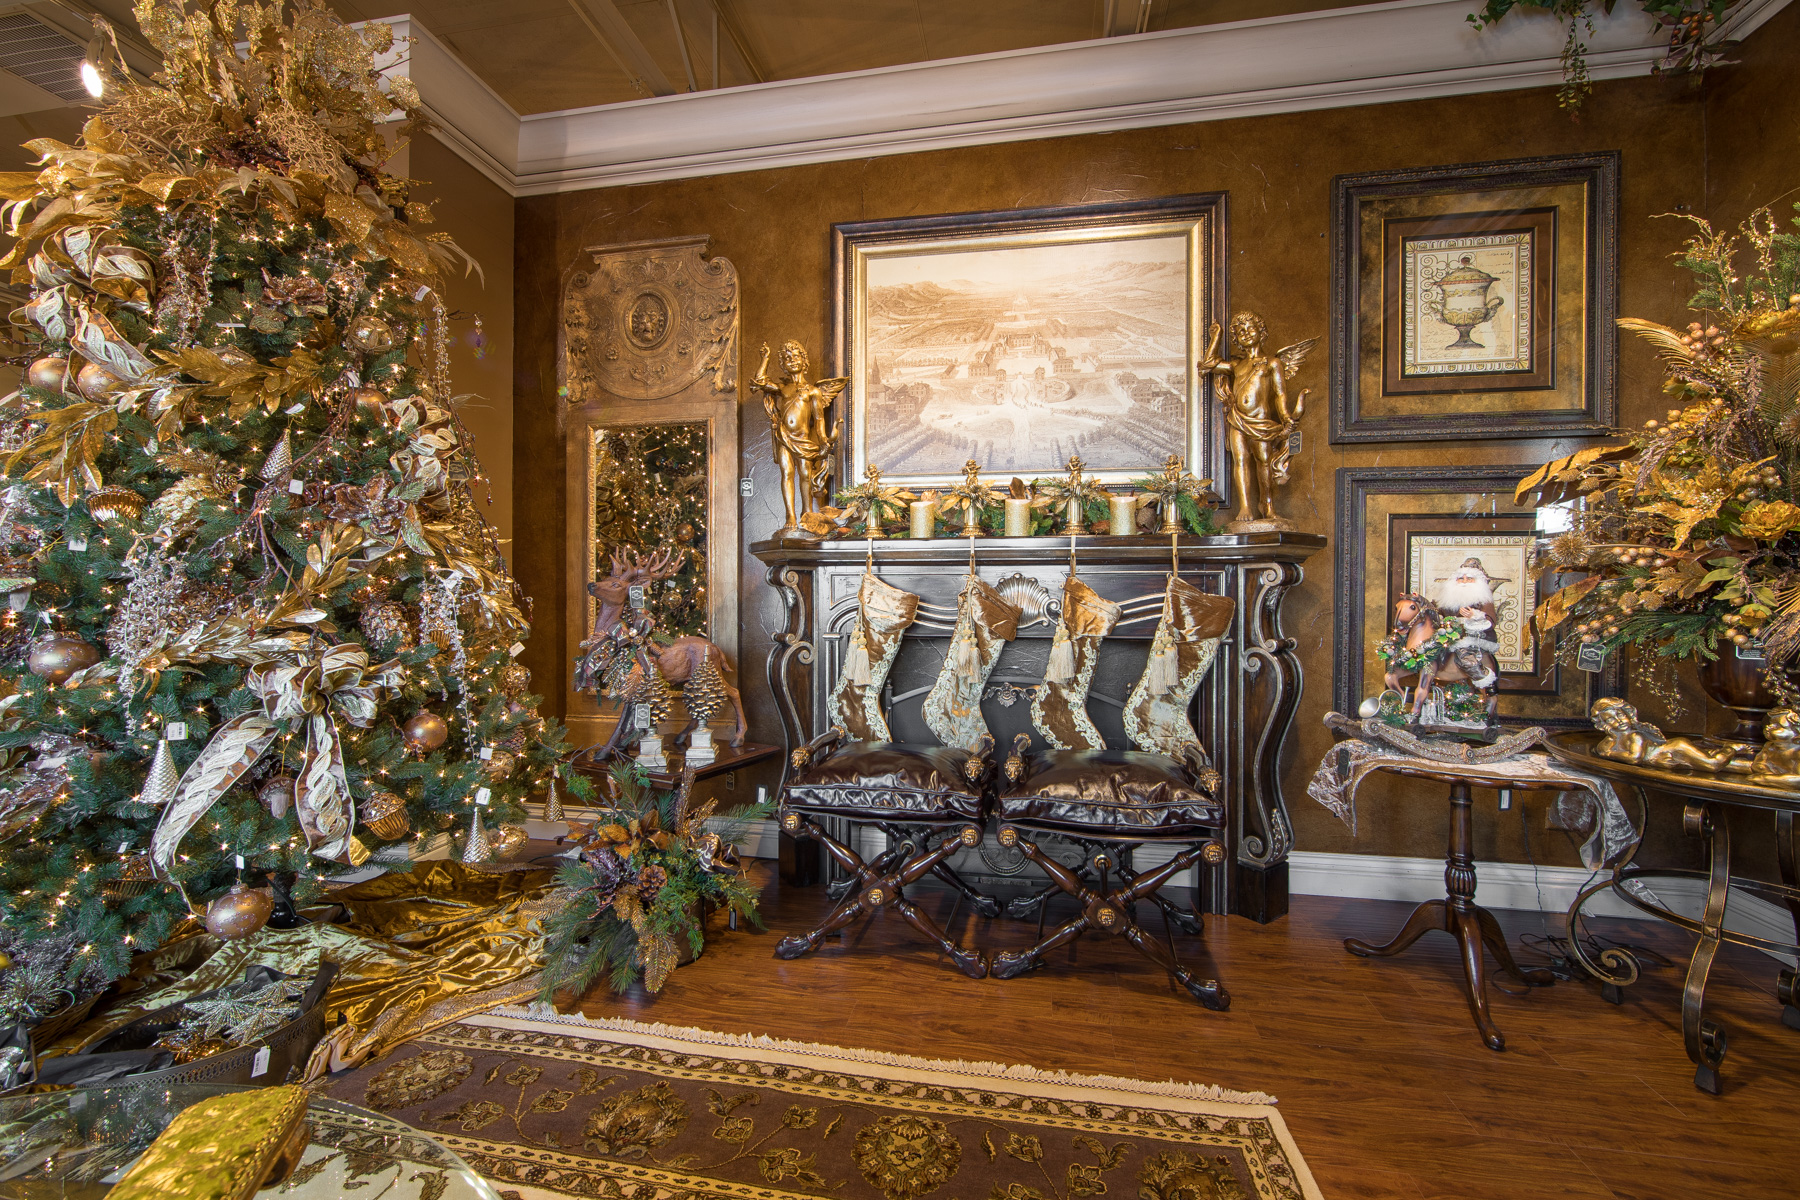 luxury-christmas-decor-and-decorations